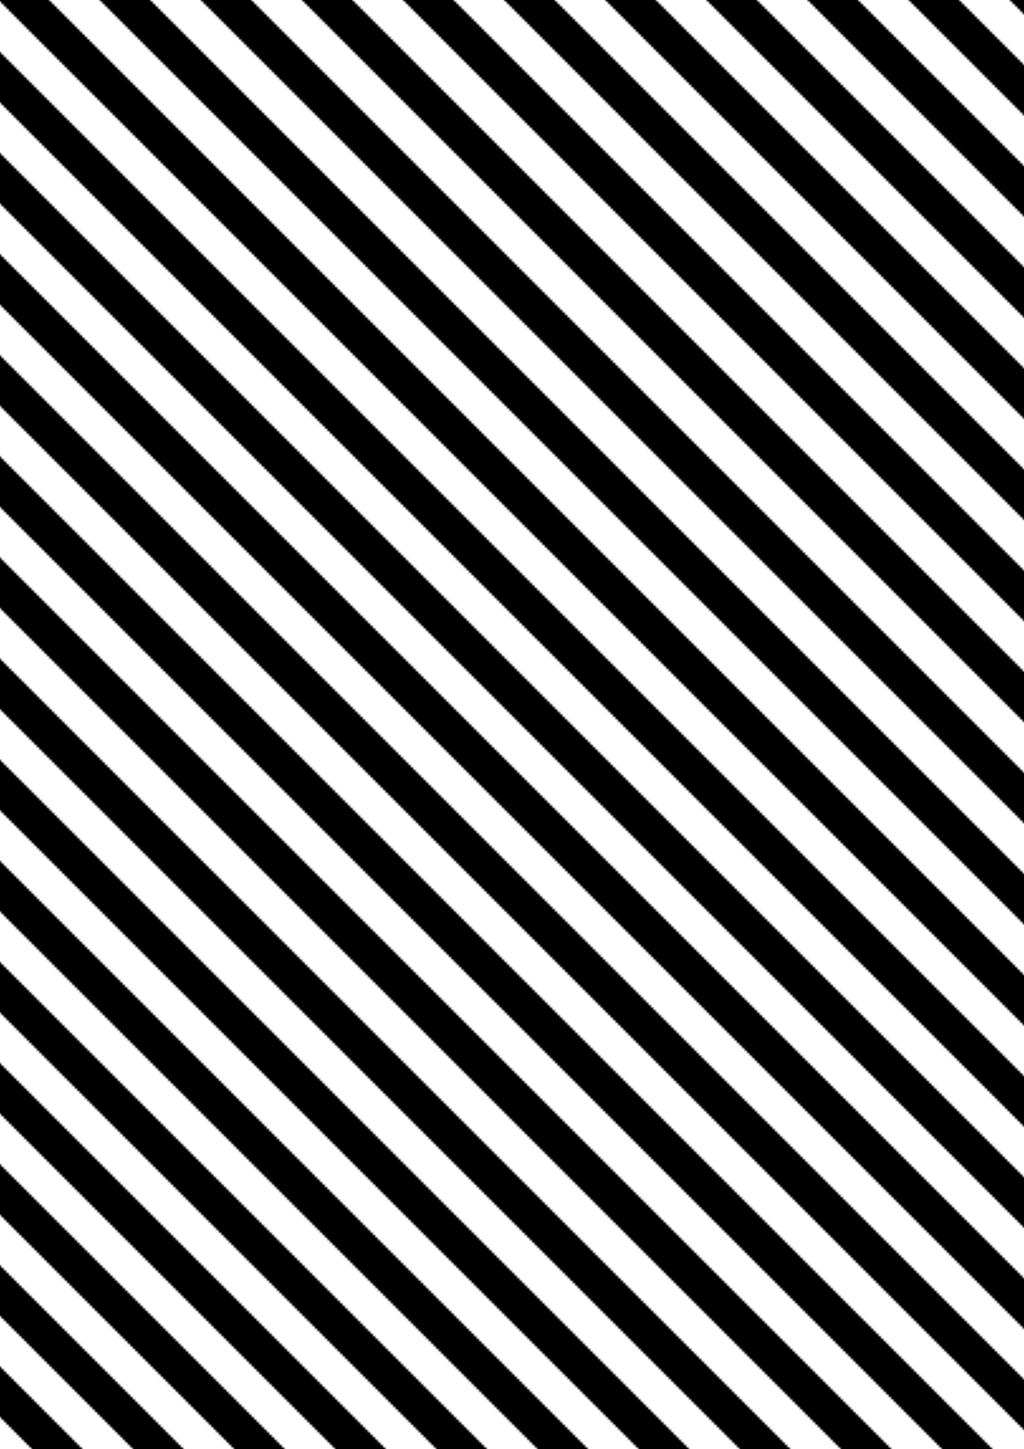 simple black and white patterns stripes